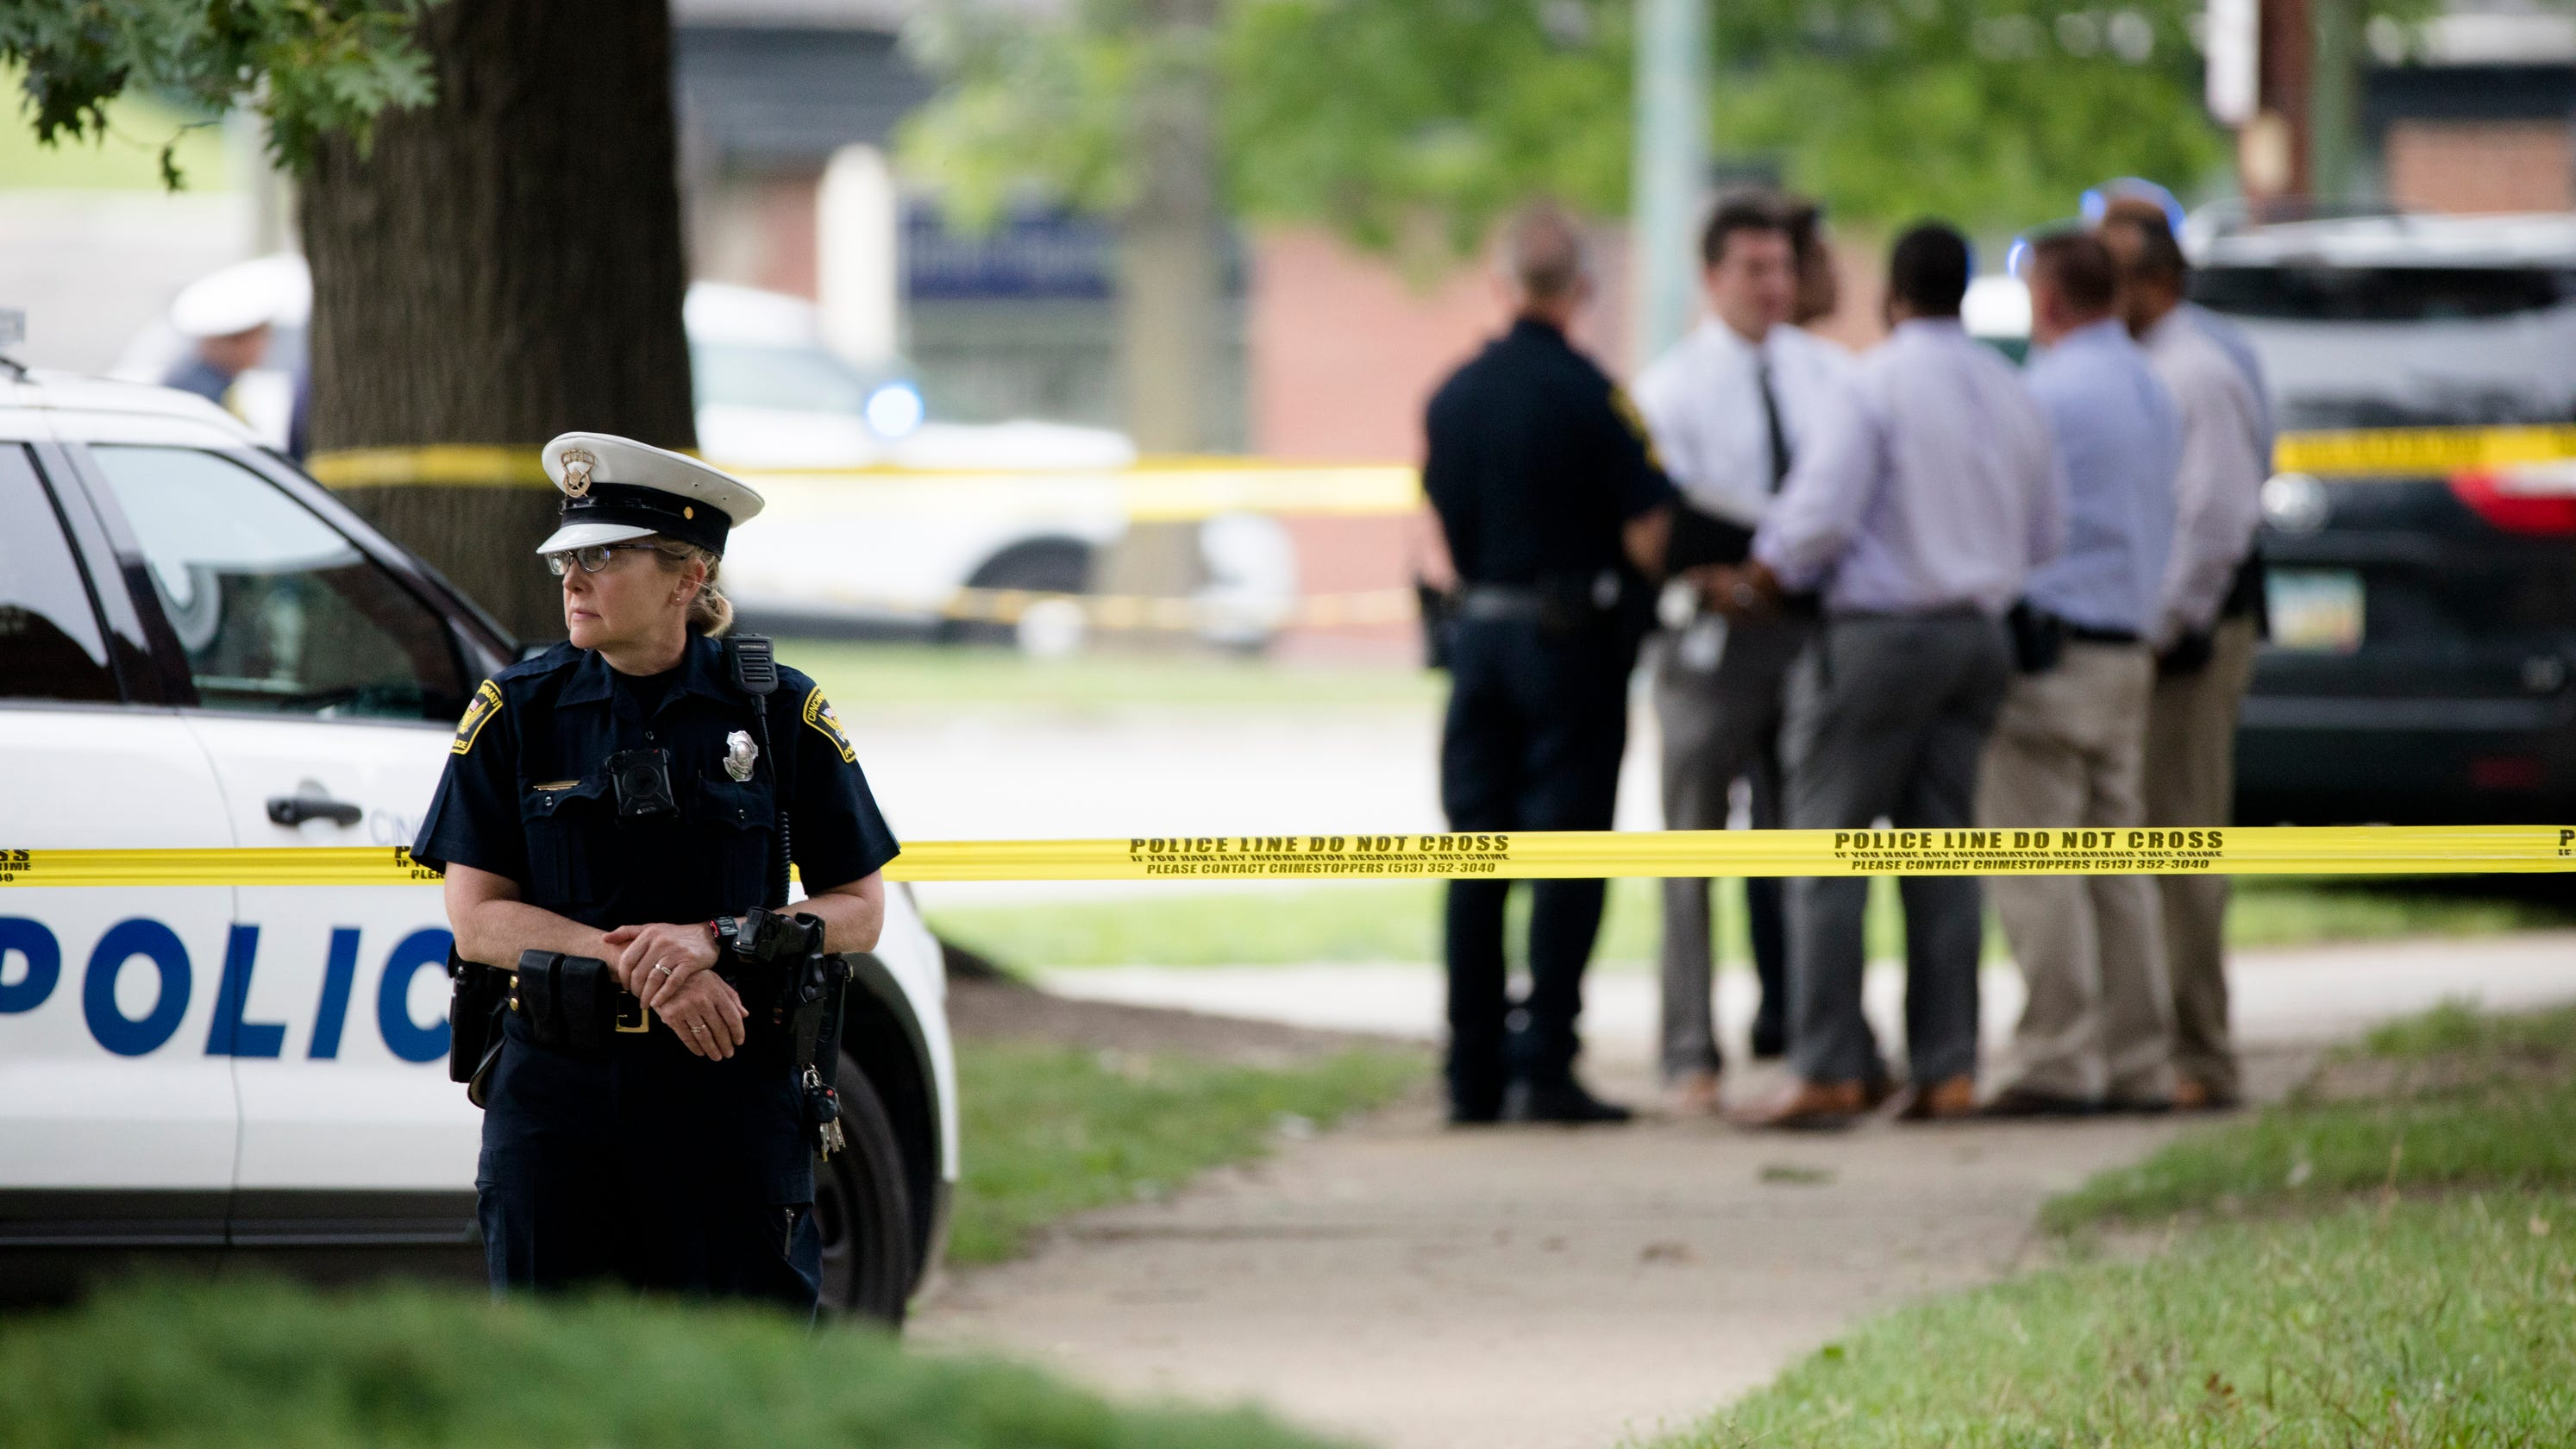 CPD: Round that hit officer in Friday incident came from